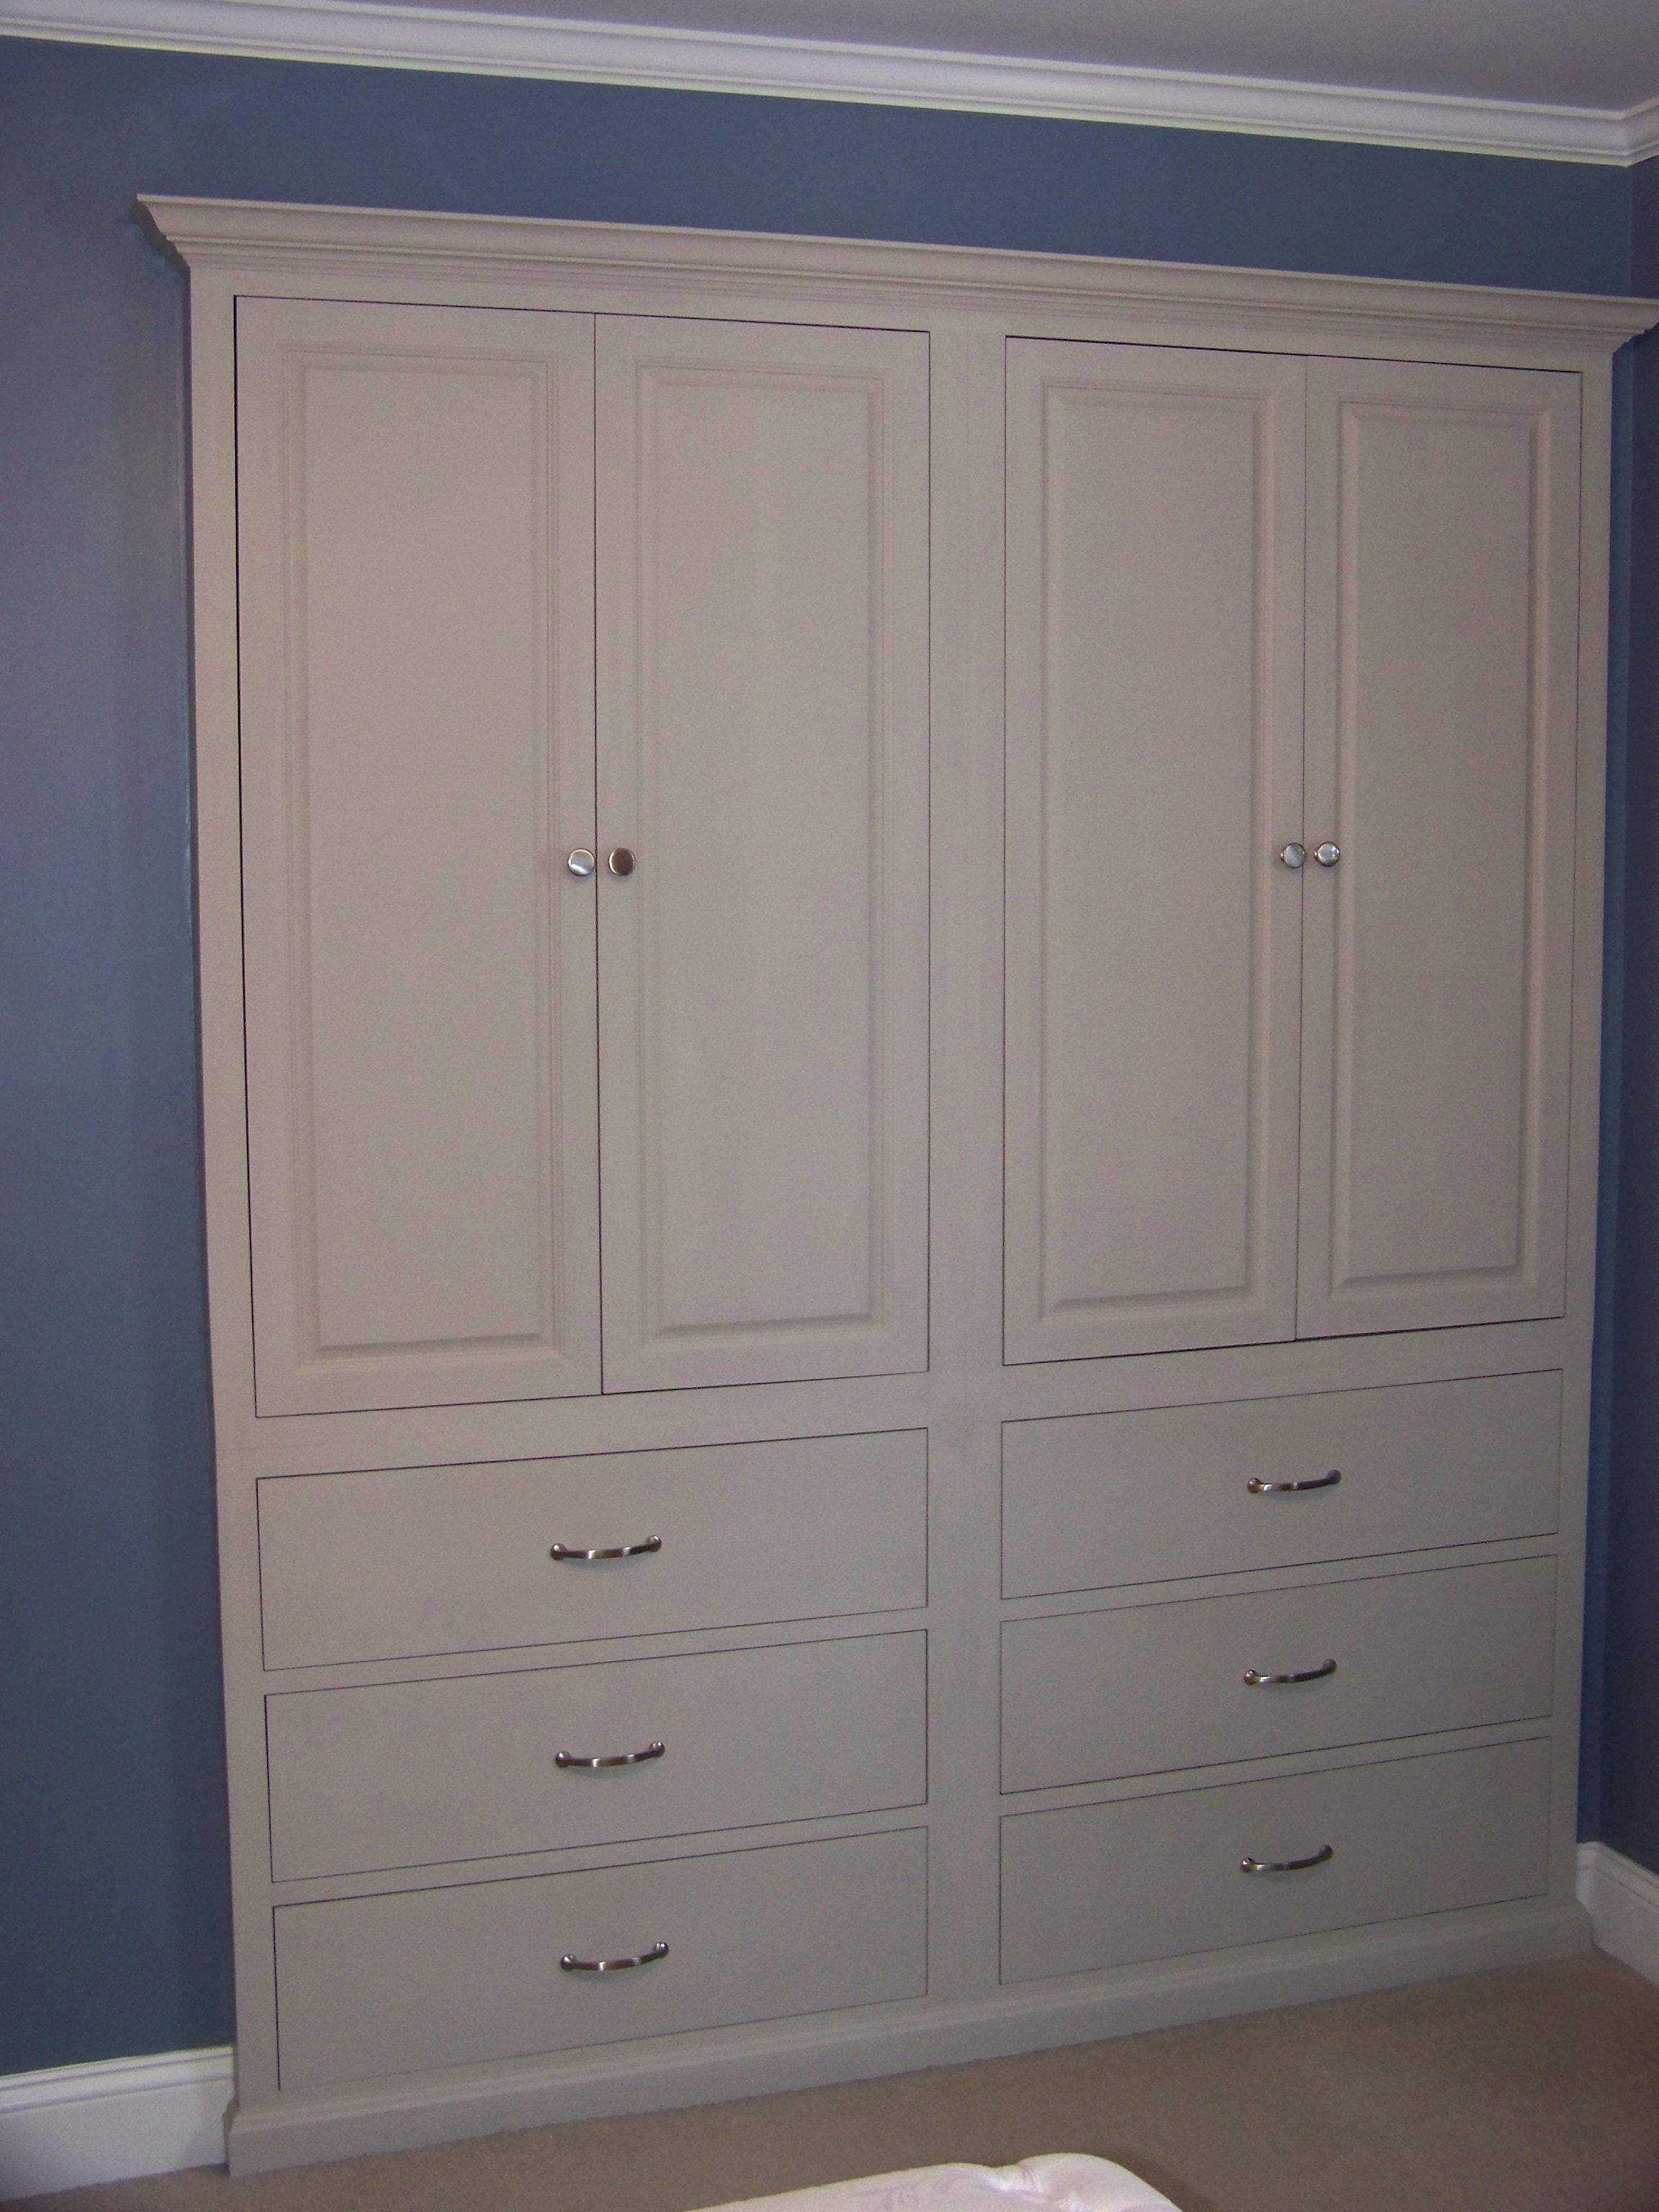 Built-in Closet Cabinets RI | KMD Custom Woodworking - (401) 639-8140